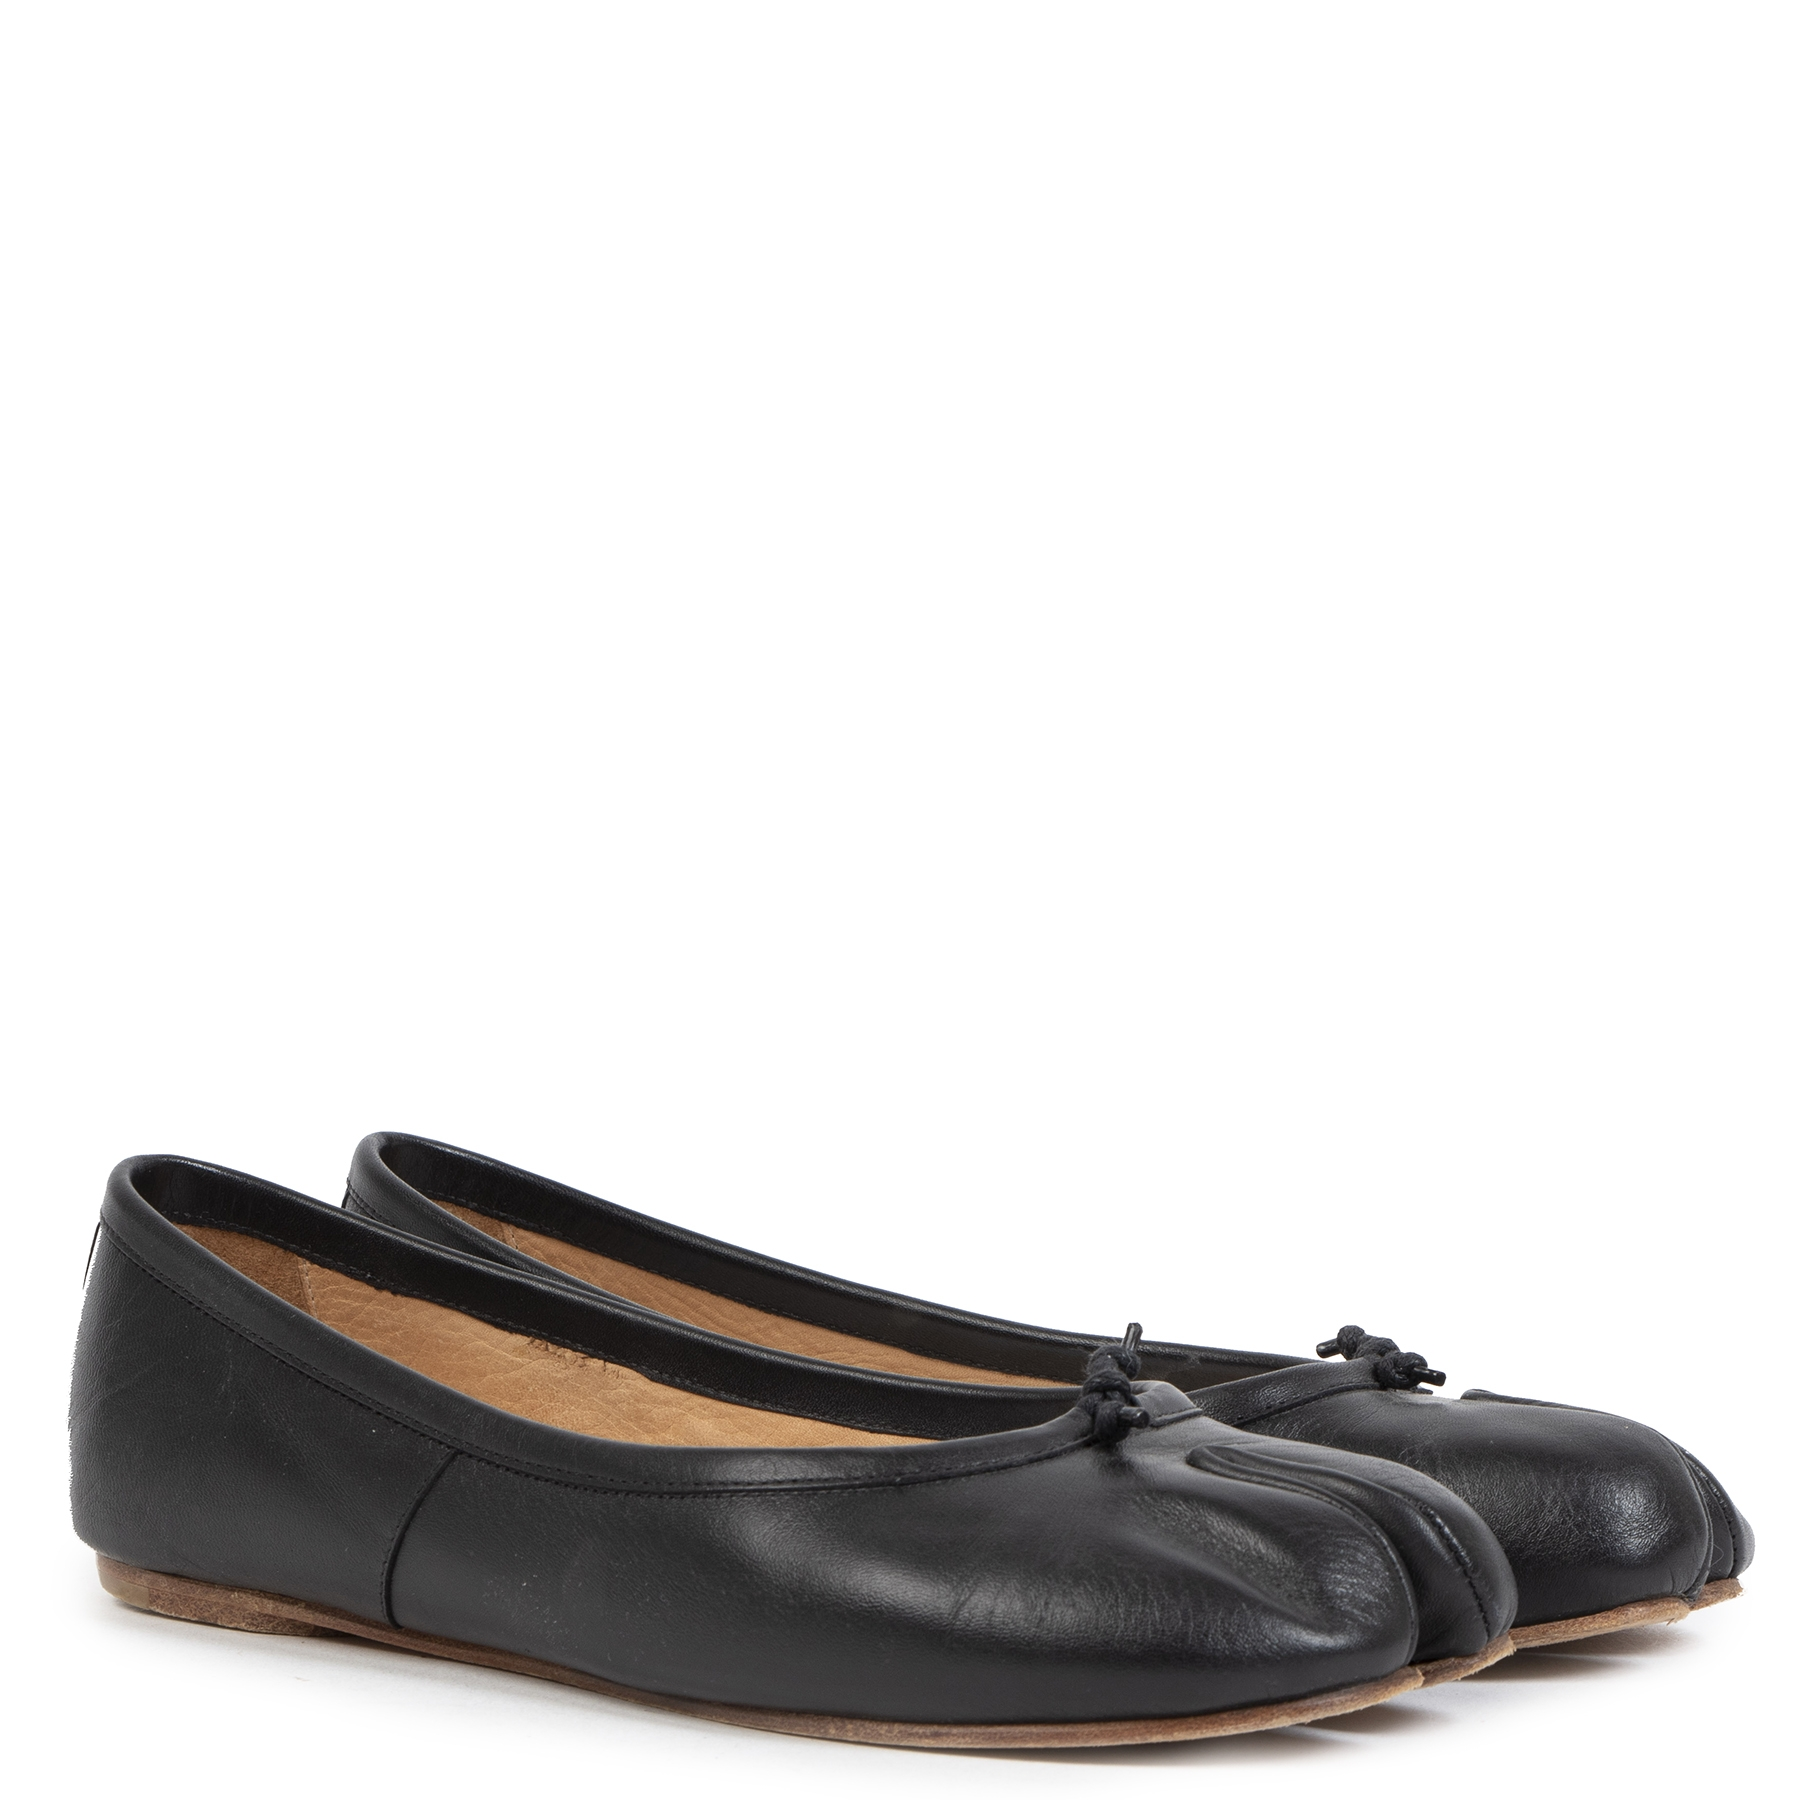 Authentic secondhand Maison Margiela Black Leather Tabi Toe Ballerina Flats - Size 37 designer bags accessories shoes clothing luxury vintage webshop fashion designer brands safe secure online shopping worldwide shipping